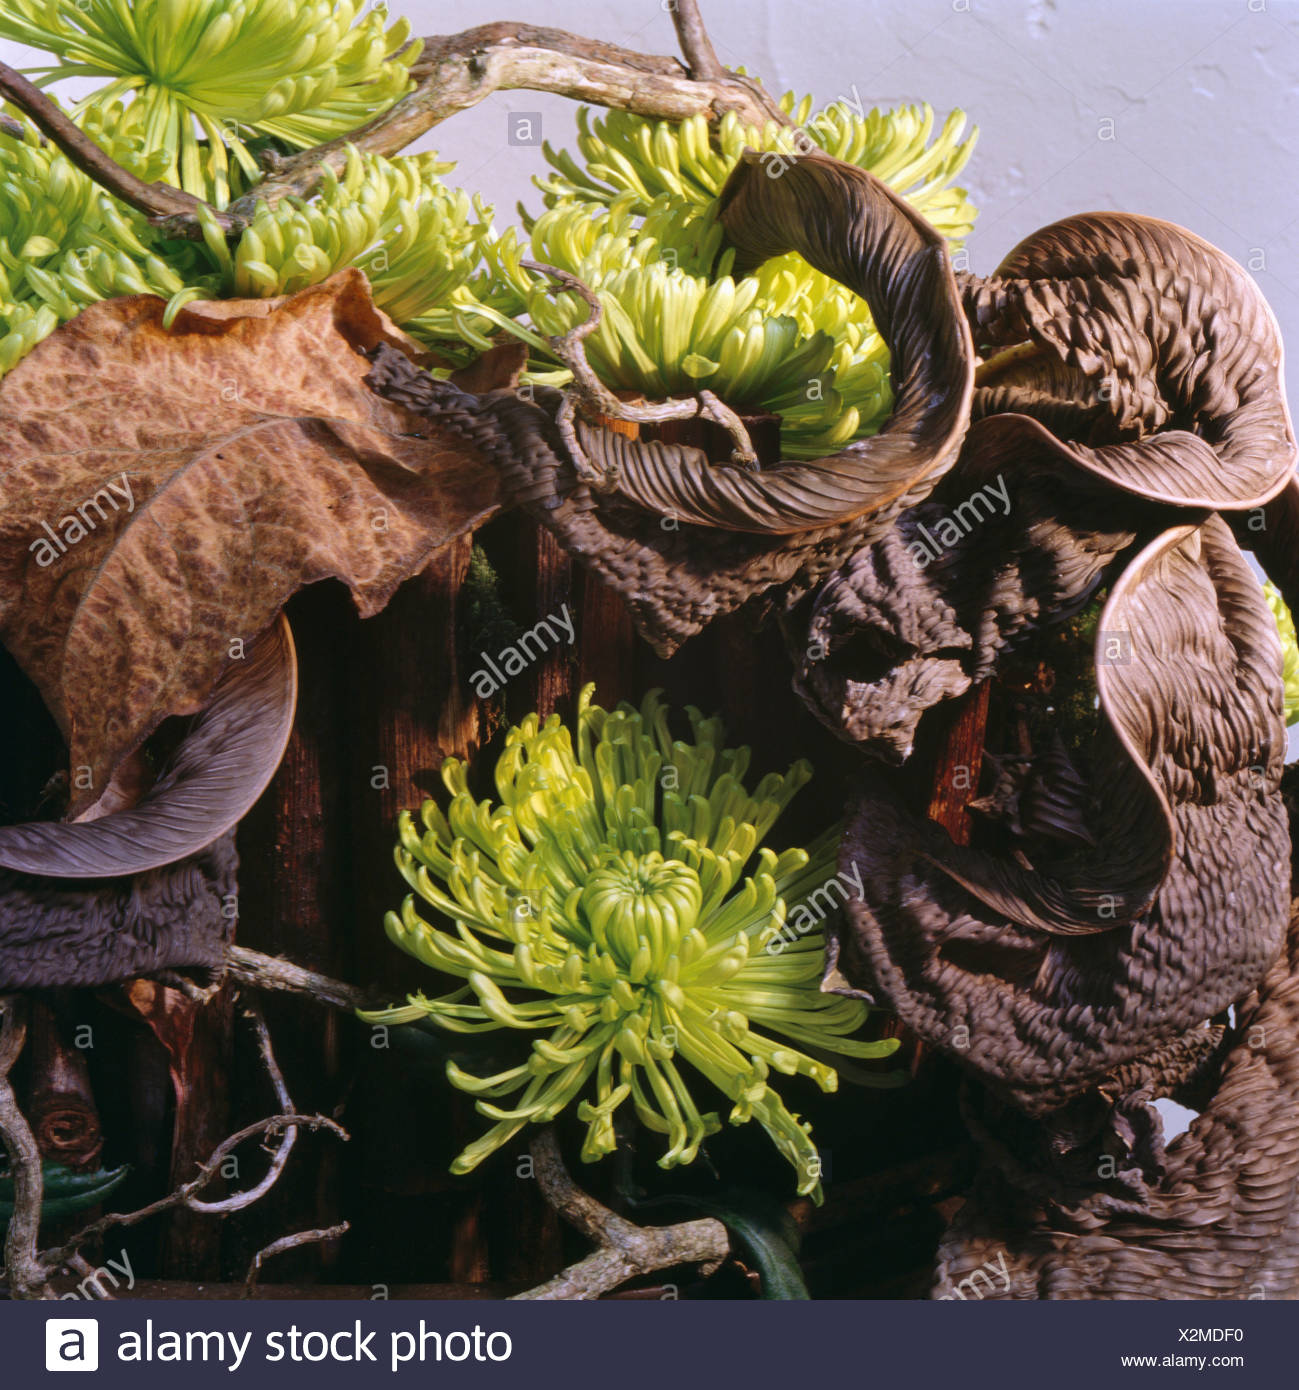 Still Life Of Lime Green Chrysanthemums And Dried Brown Hosta Leaves